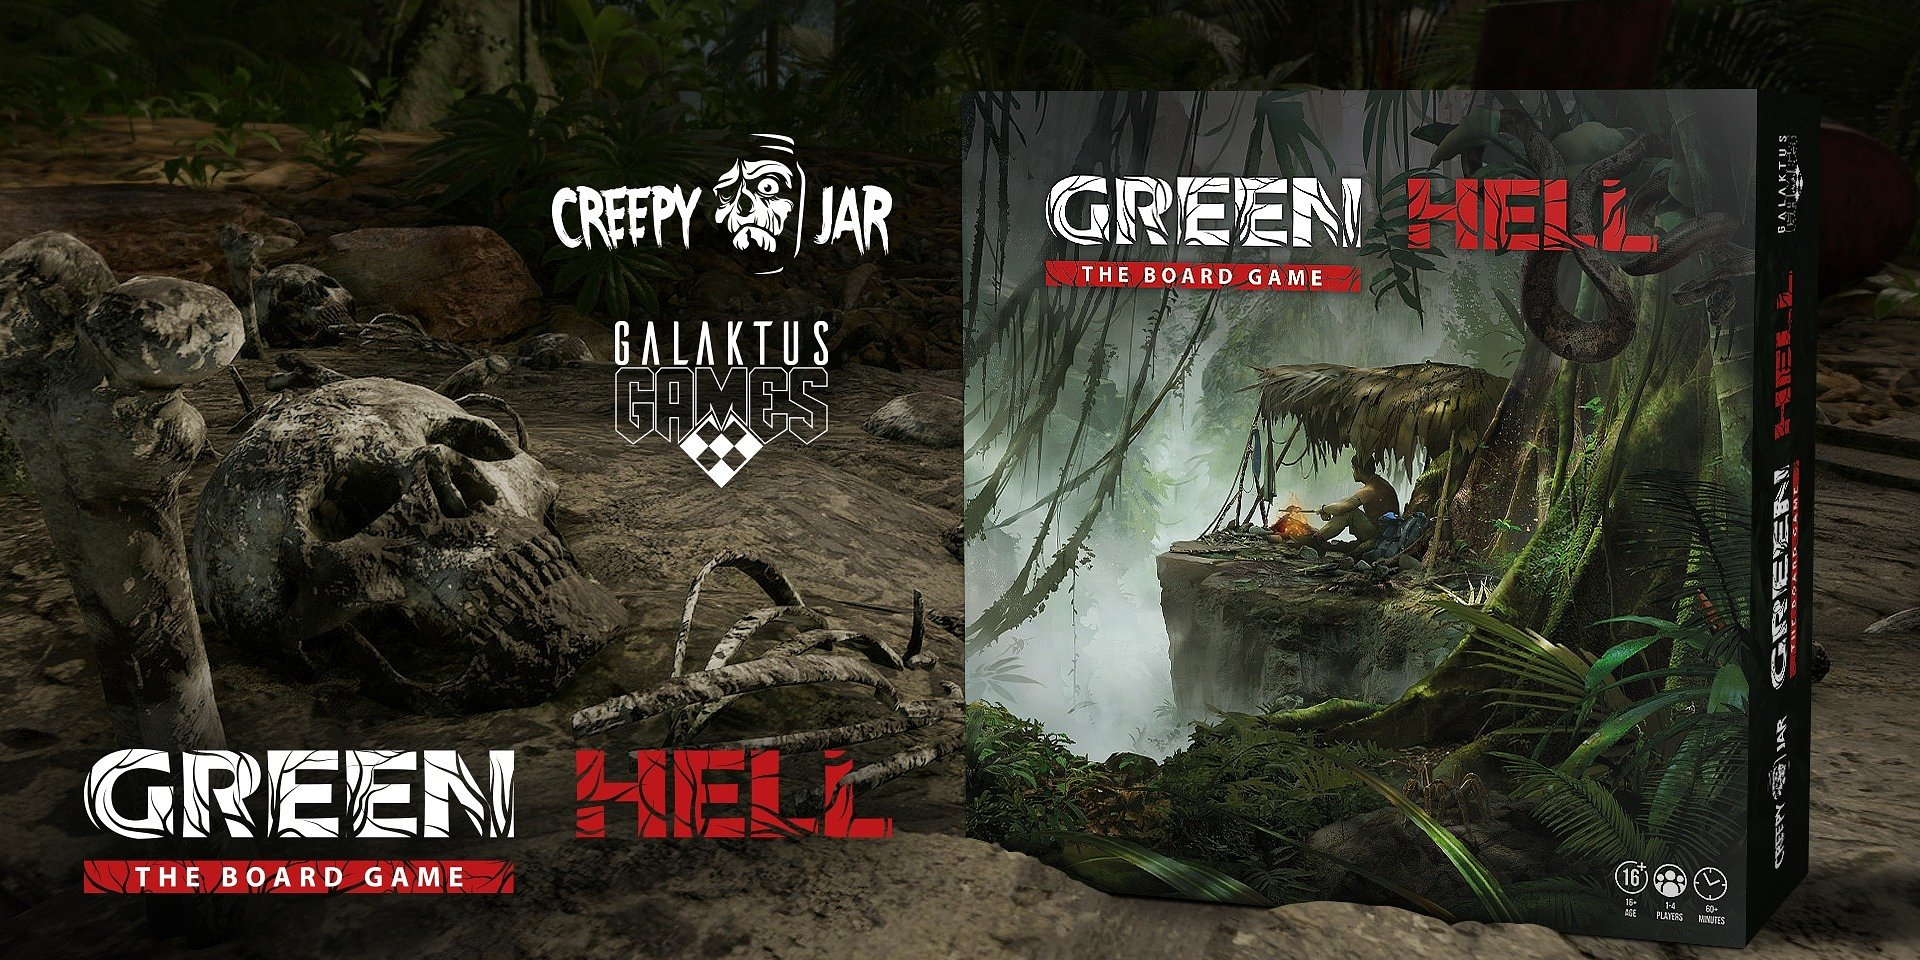 Green Hell: The Board Game is starting its Kickstarter Campaign soon. Experience the other side of the Amazonian survival drama with your friends.